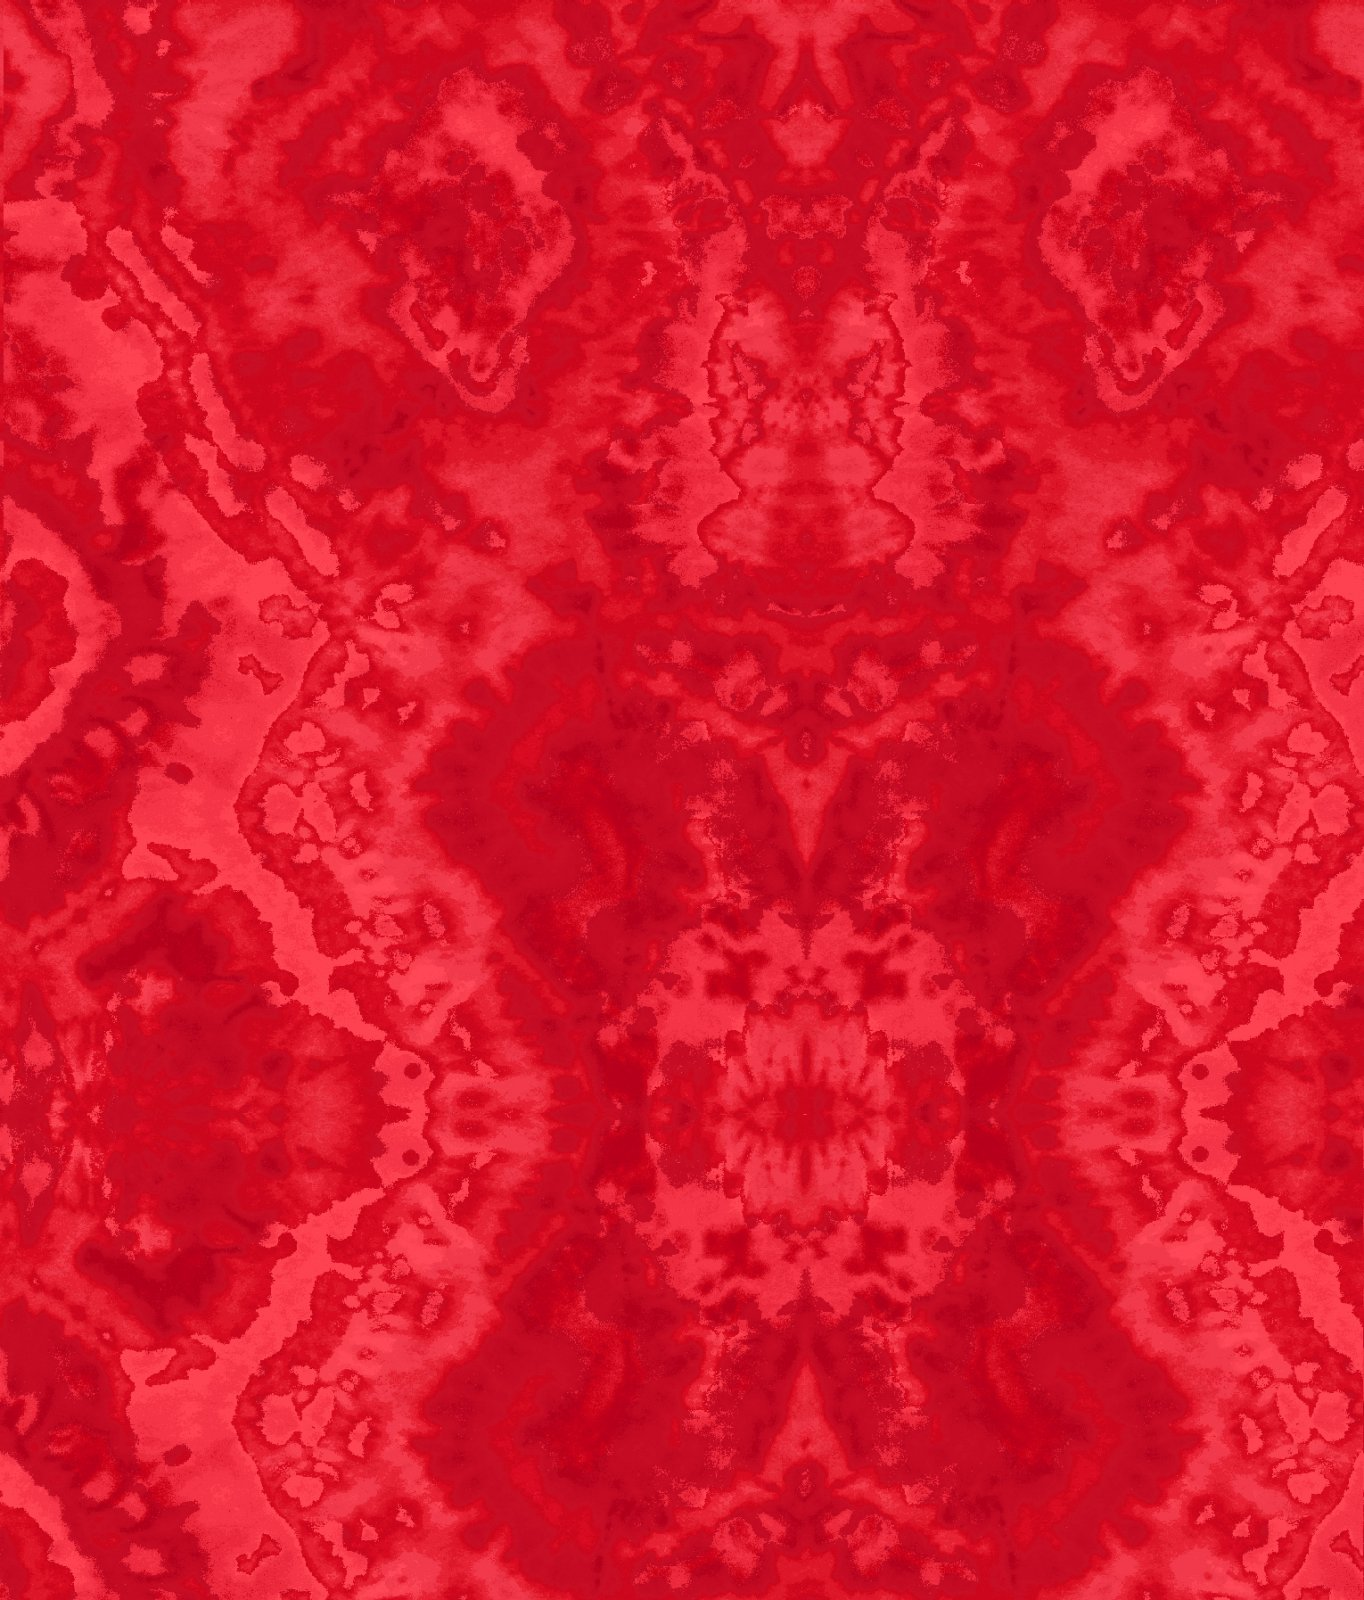 AE-Comfy Flannel Print 9419-888 Red Blender Flannel